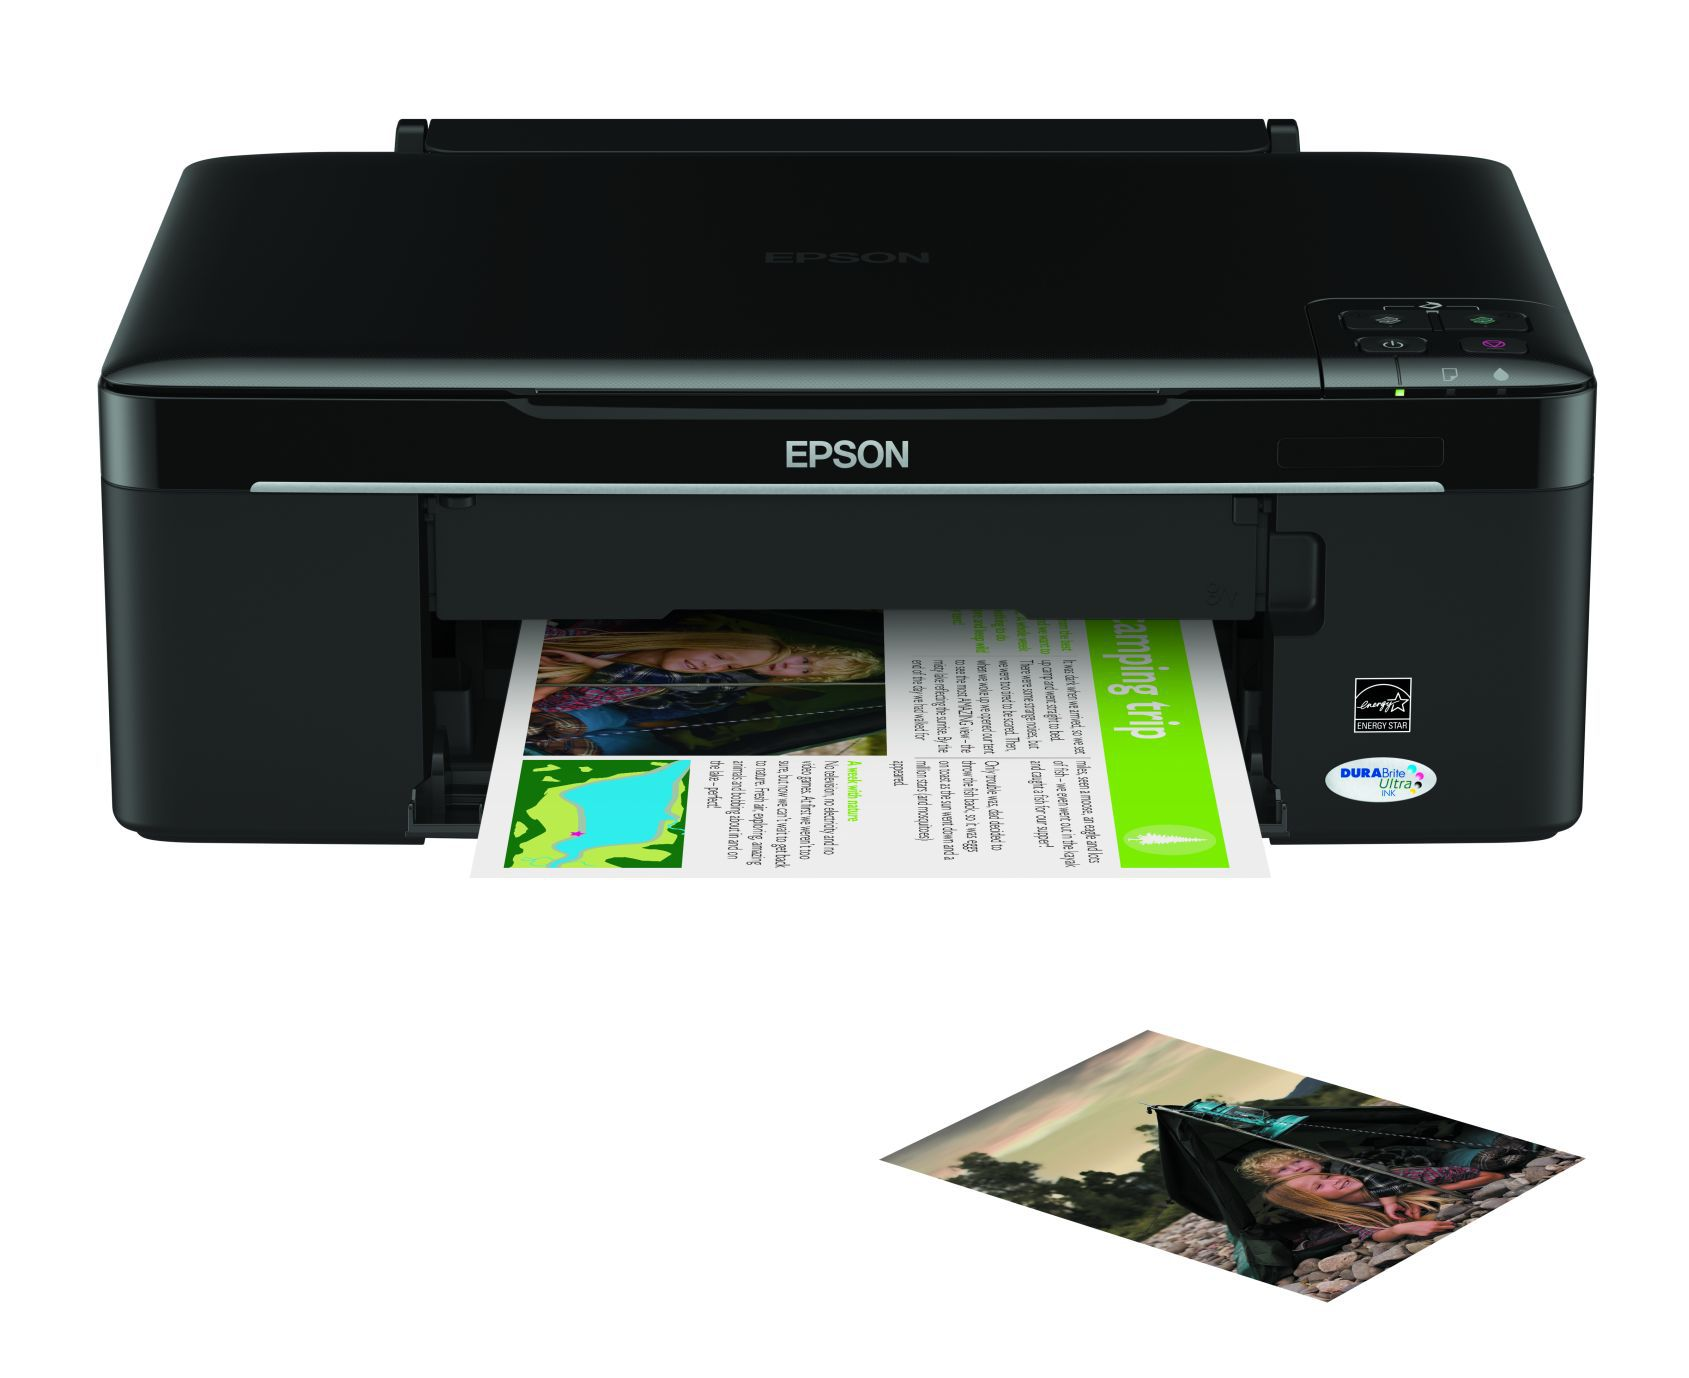 DX4050 WINDOWS DRIVER EPSON 7 POUR TÉLÉCHARGER